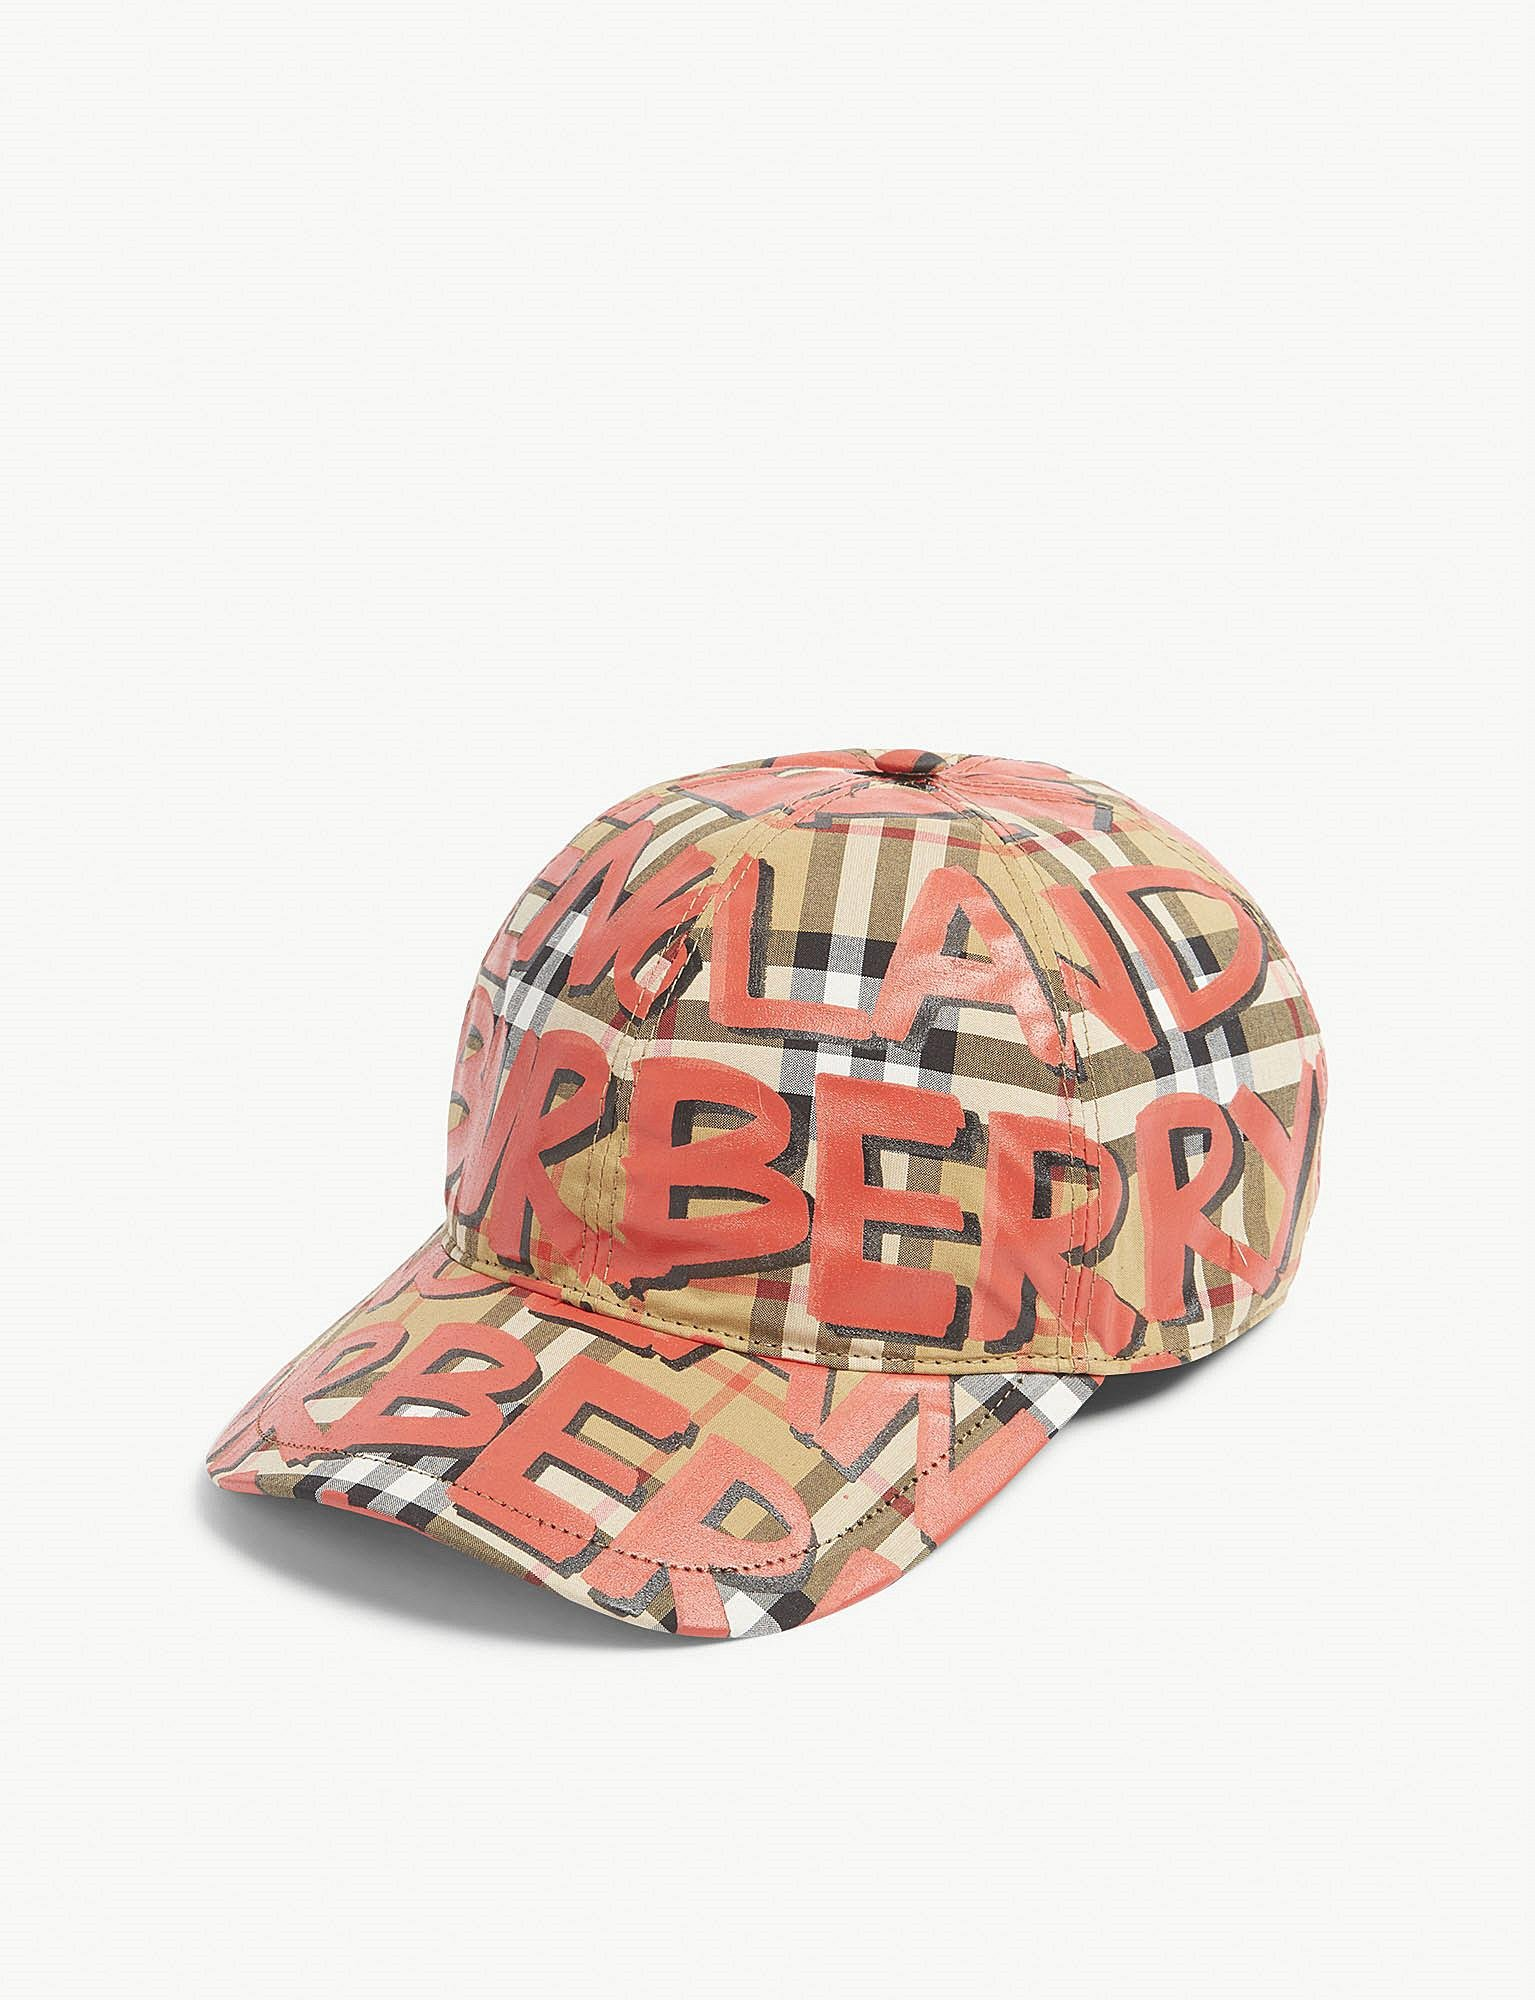 scribbled graffiti check cap - Multicolour Burberry 53V08UsD